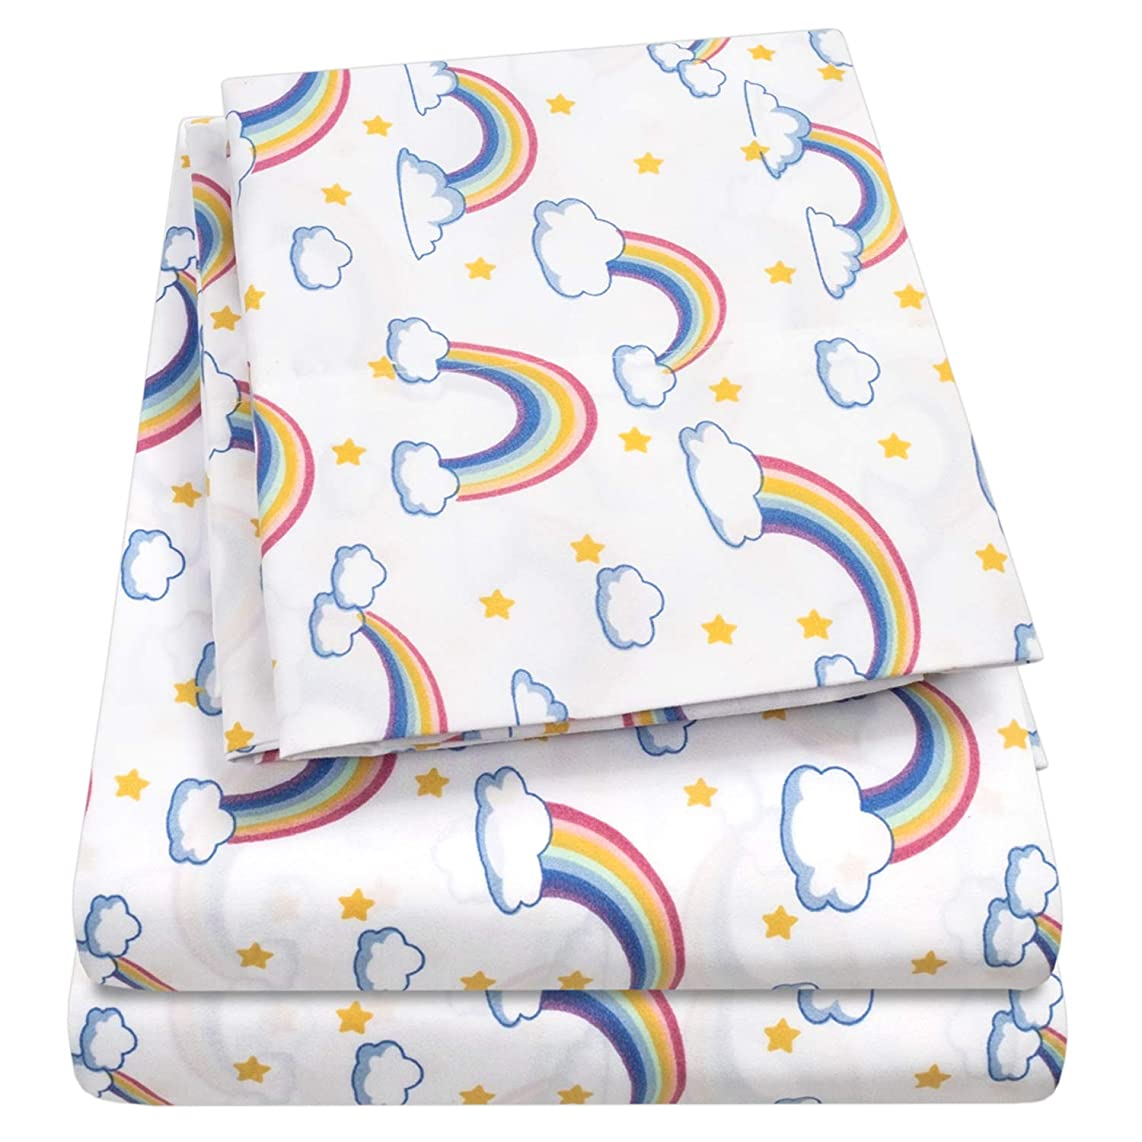 1500 Supreme Kids Bed Sheet Collection - Fun Colorful and Comfortable Boys and Girls Toddler Sheet Sets - Deep Pocket Wrinkle Free Hypoallergenic Soft and Cozy Bedding - Twin, Rainbows